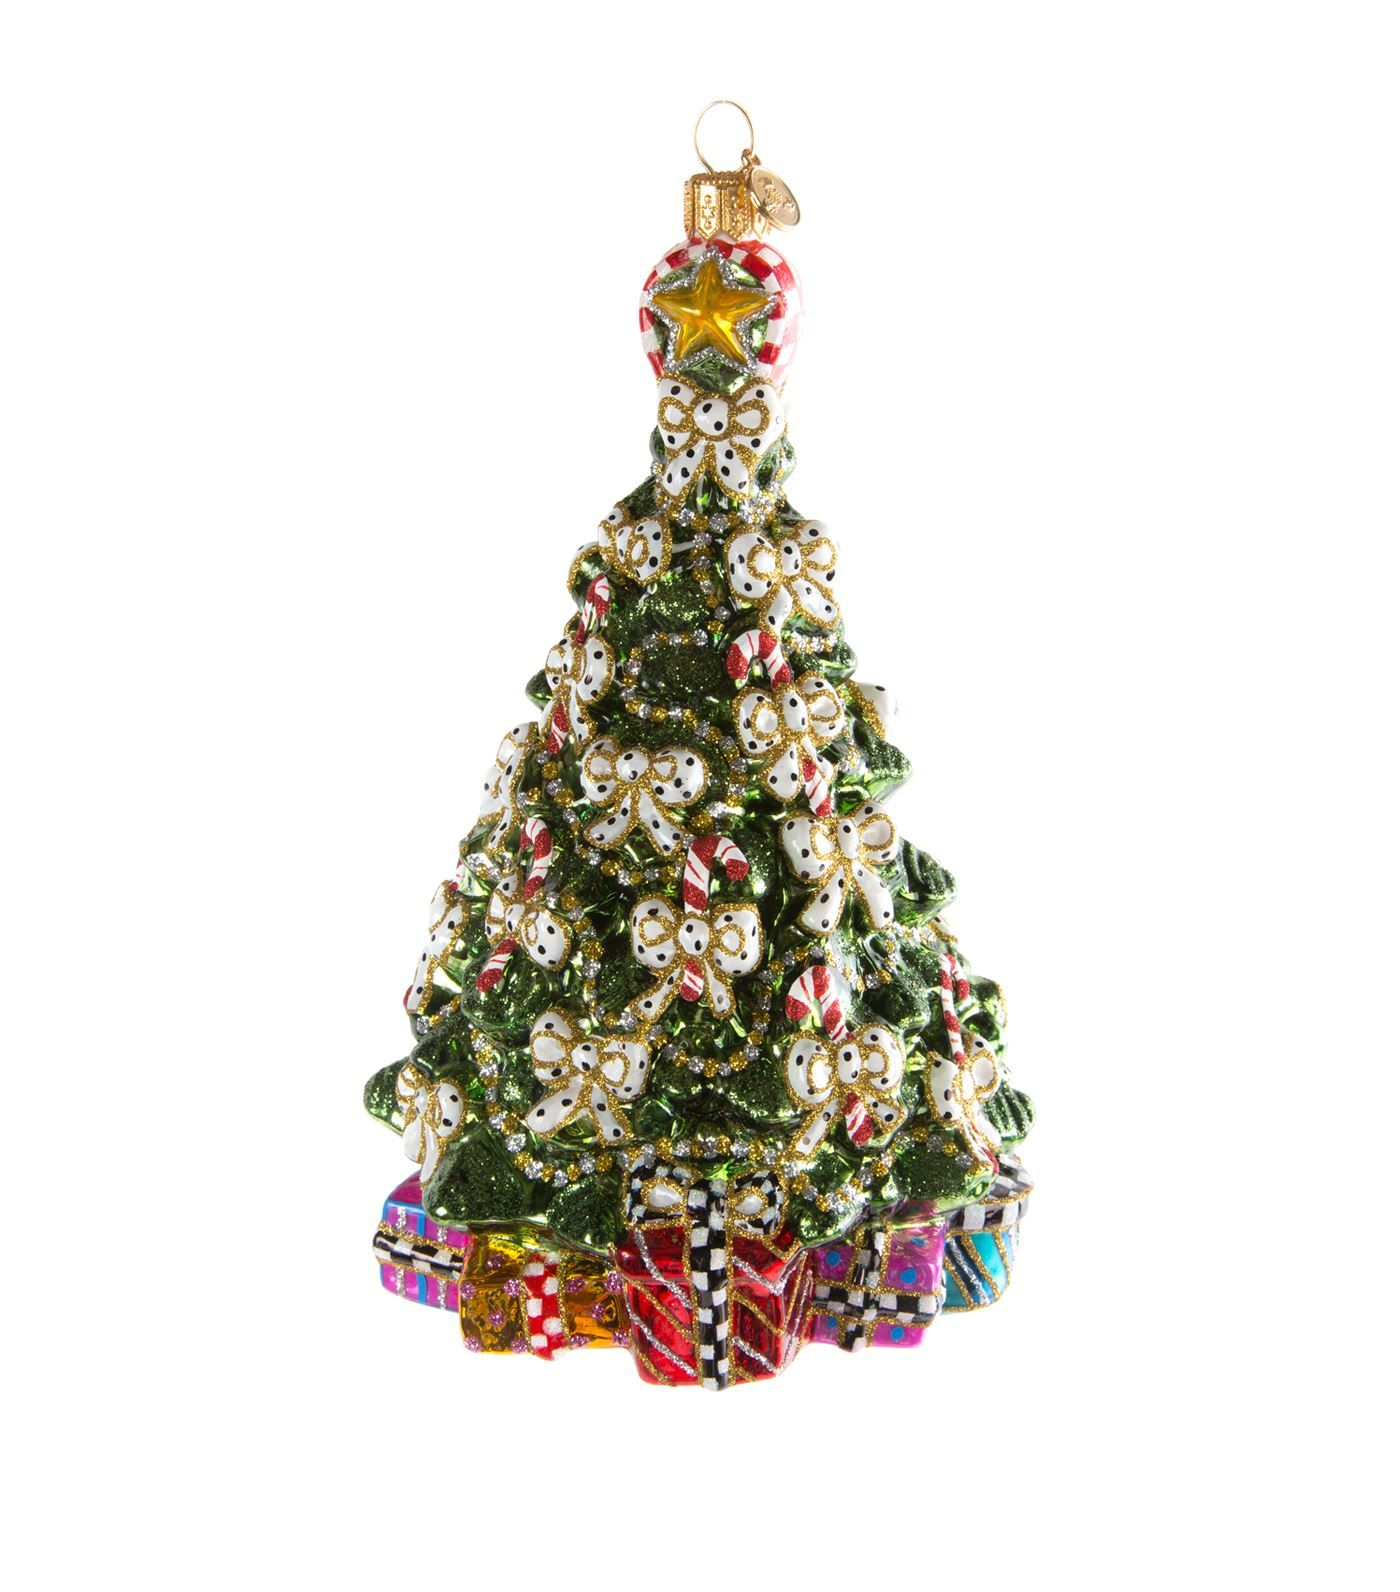 Mackenzie Childs Candy Cane Christmas Tree Decoration - Harrodscom